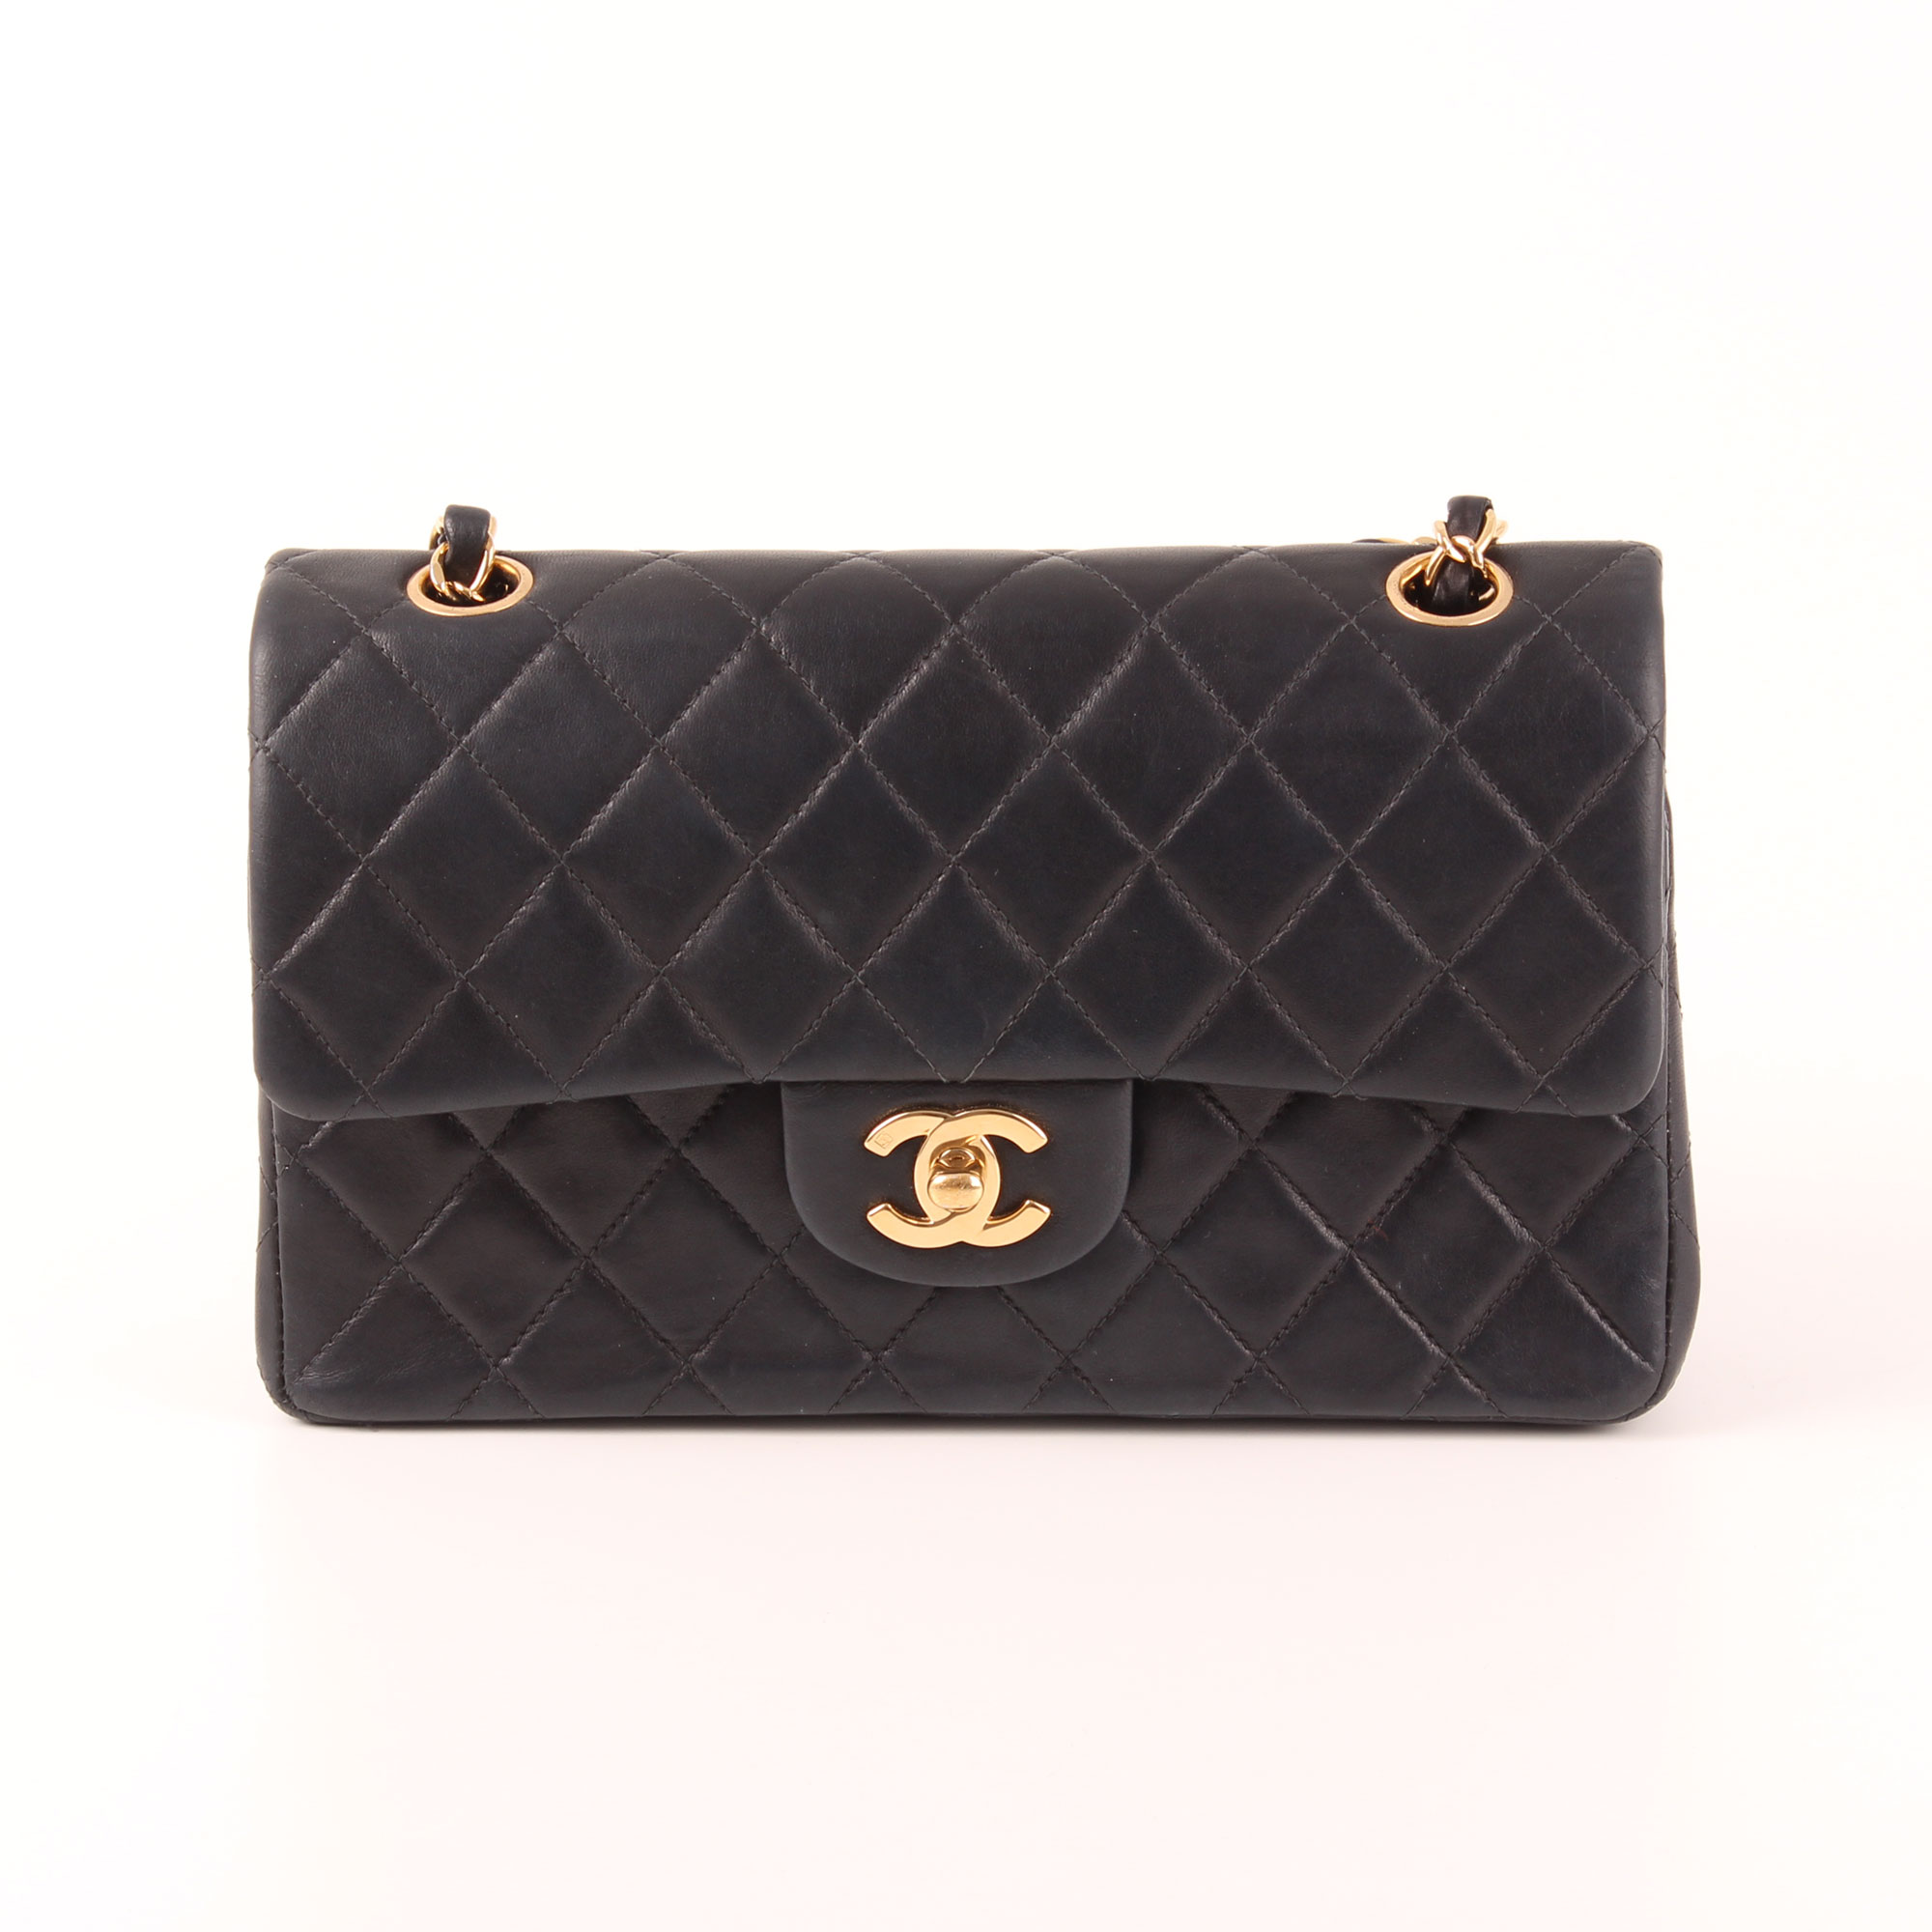 Frontal Image Chanel Timeless Double Flap Bag in navy blue. ef8828341947e